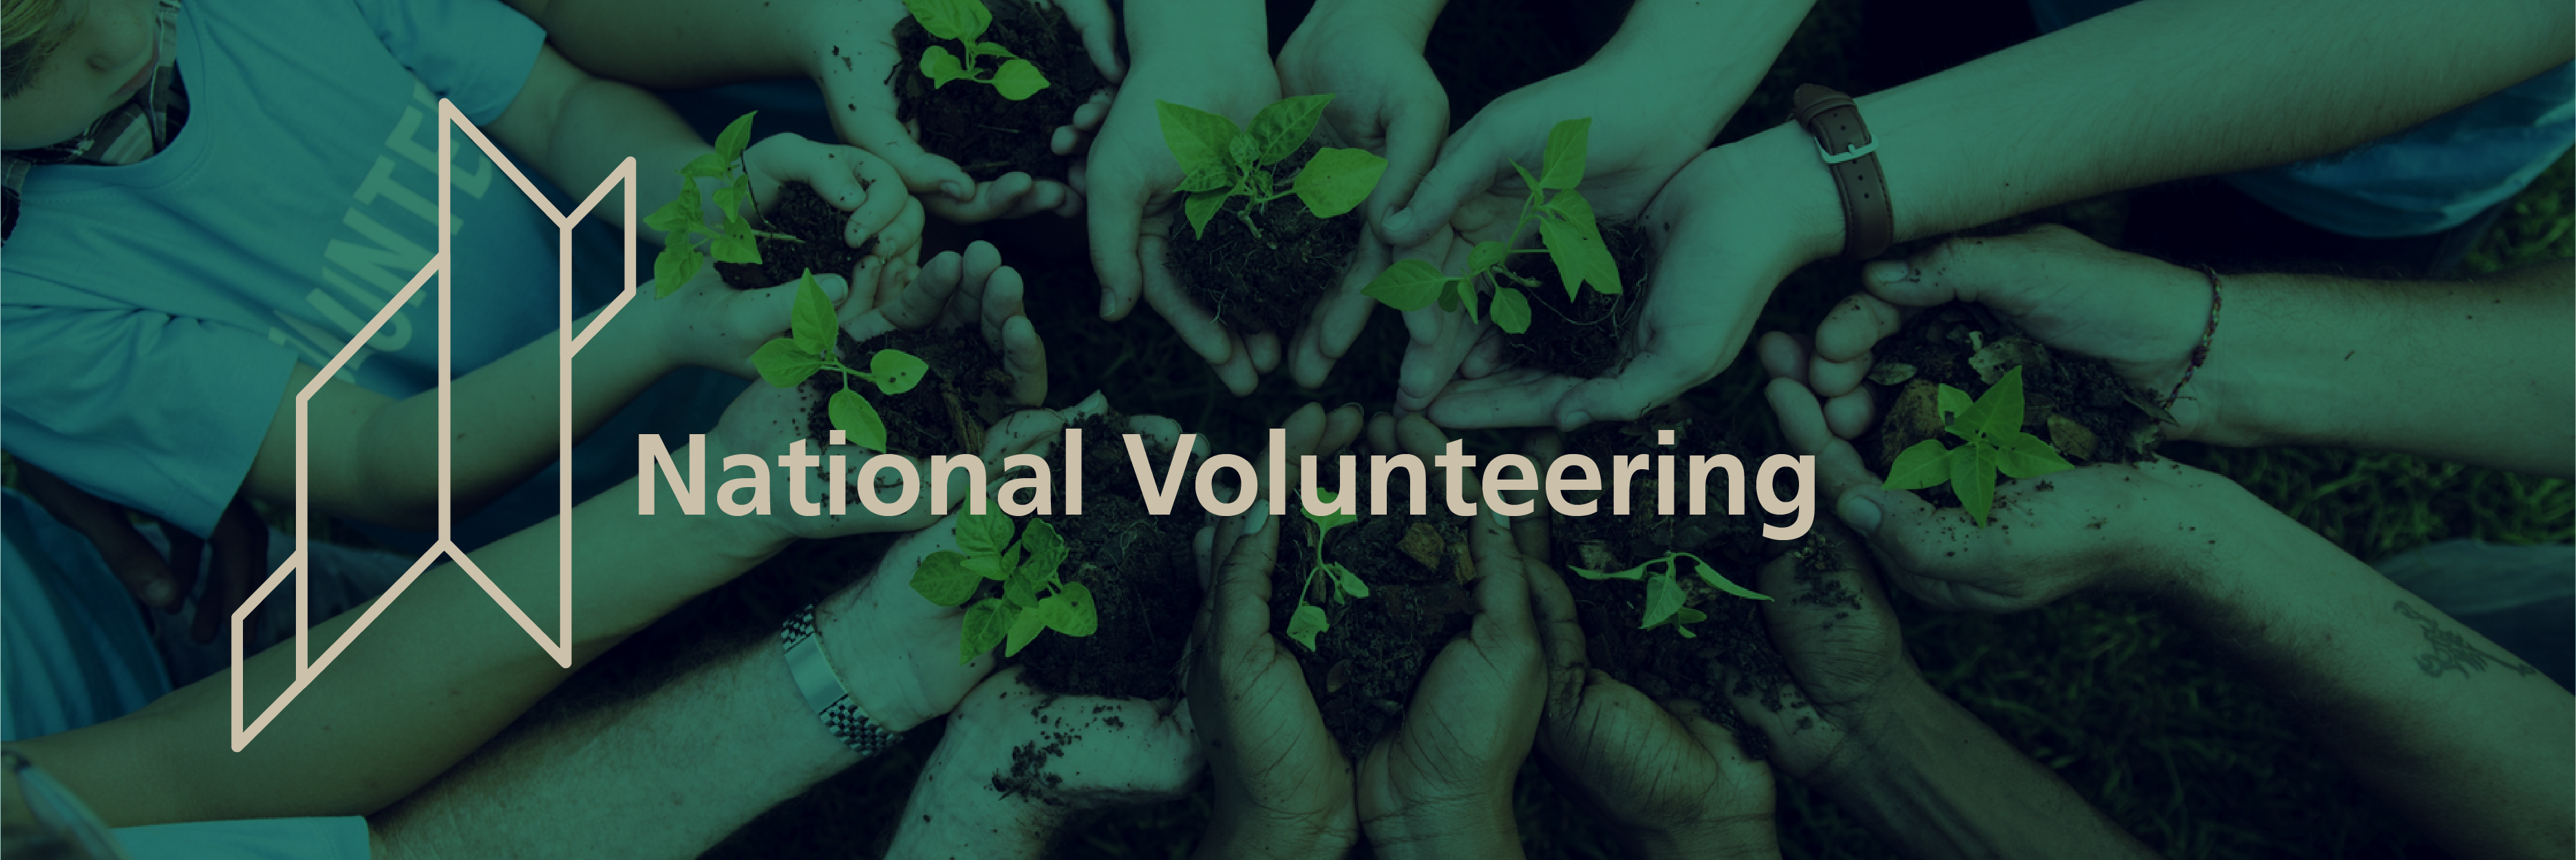 National Volunteering